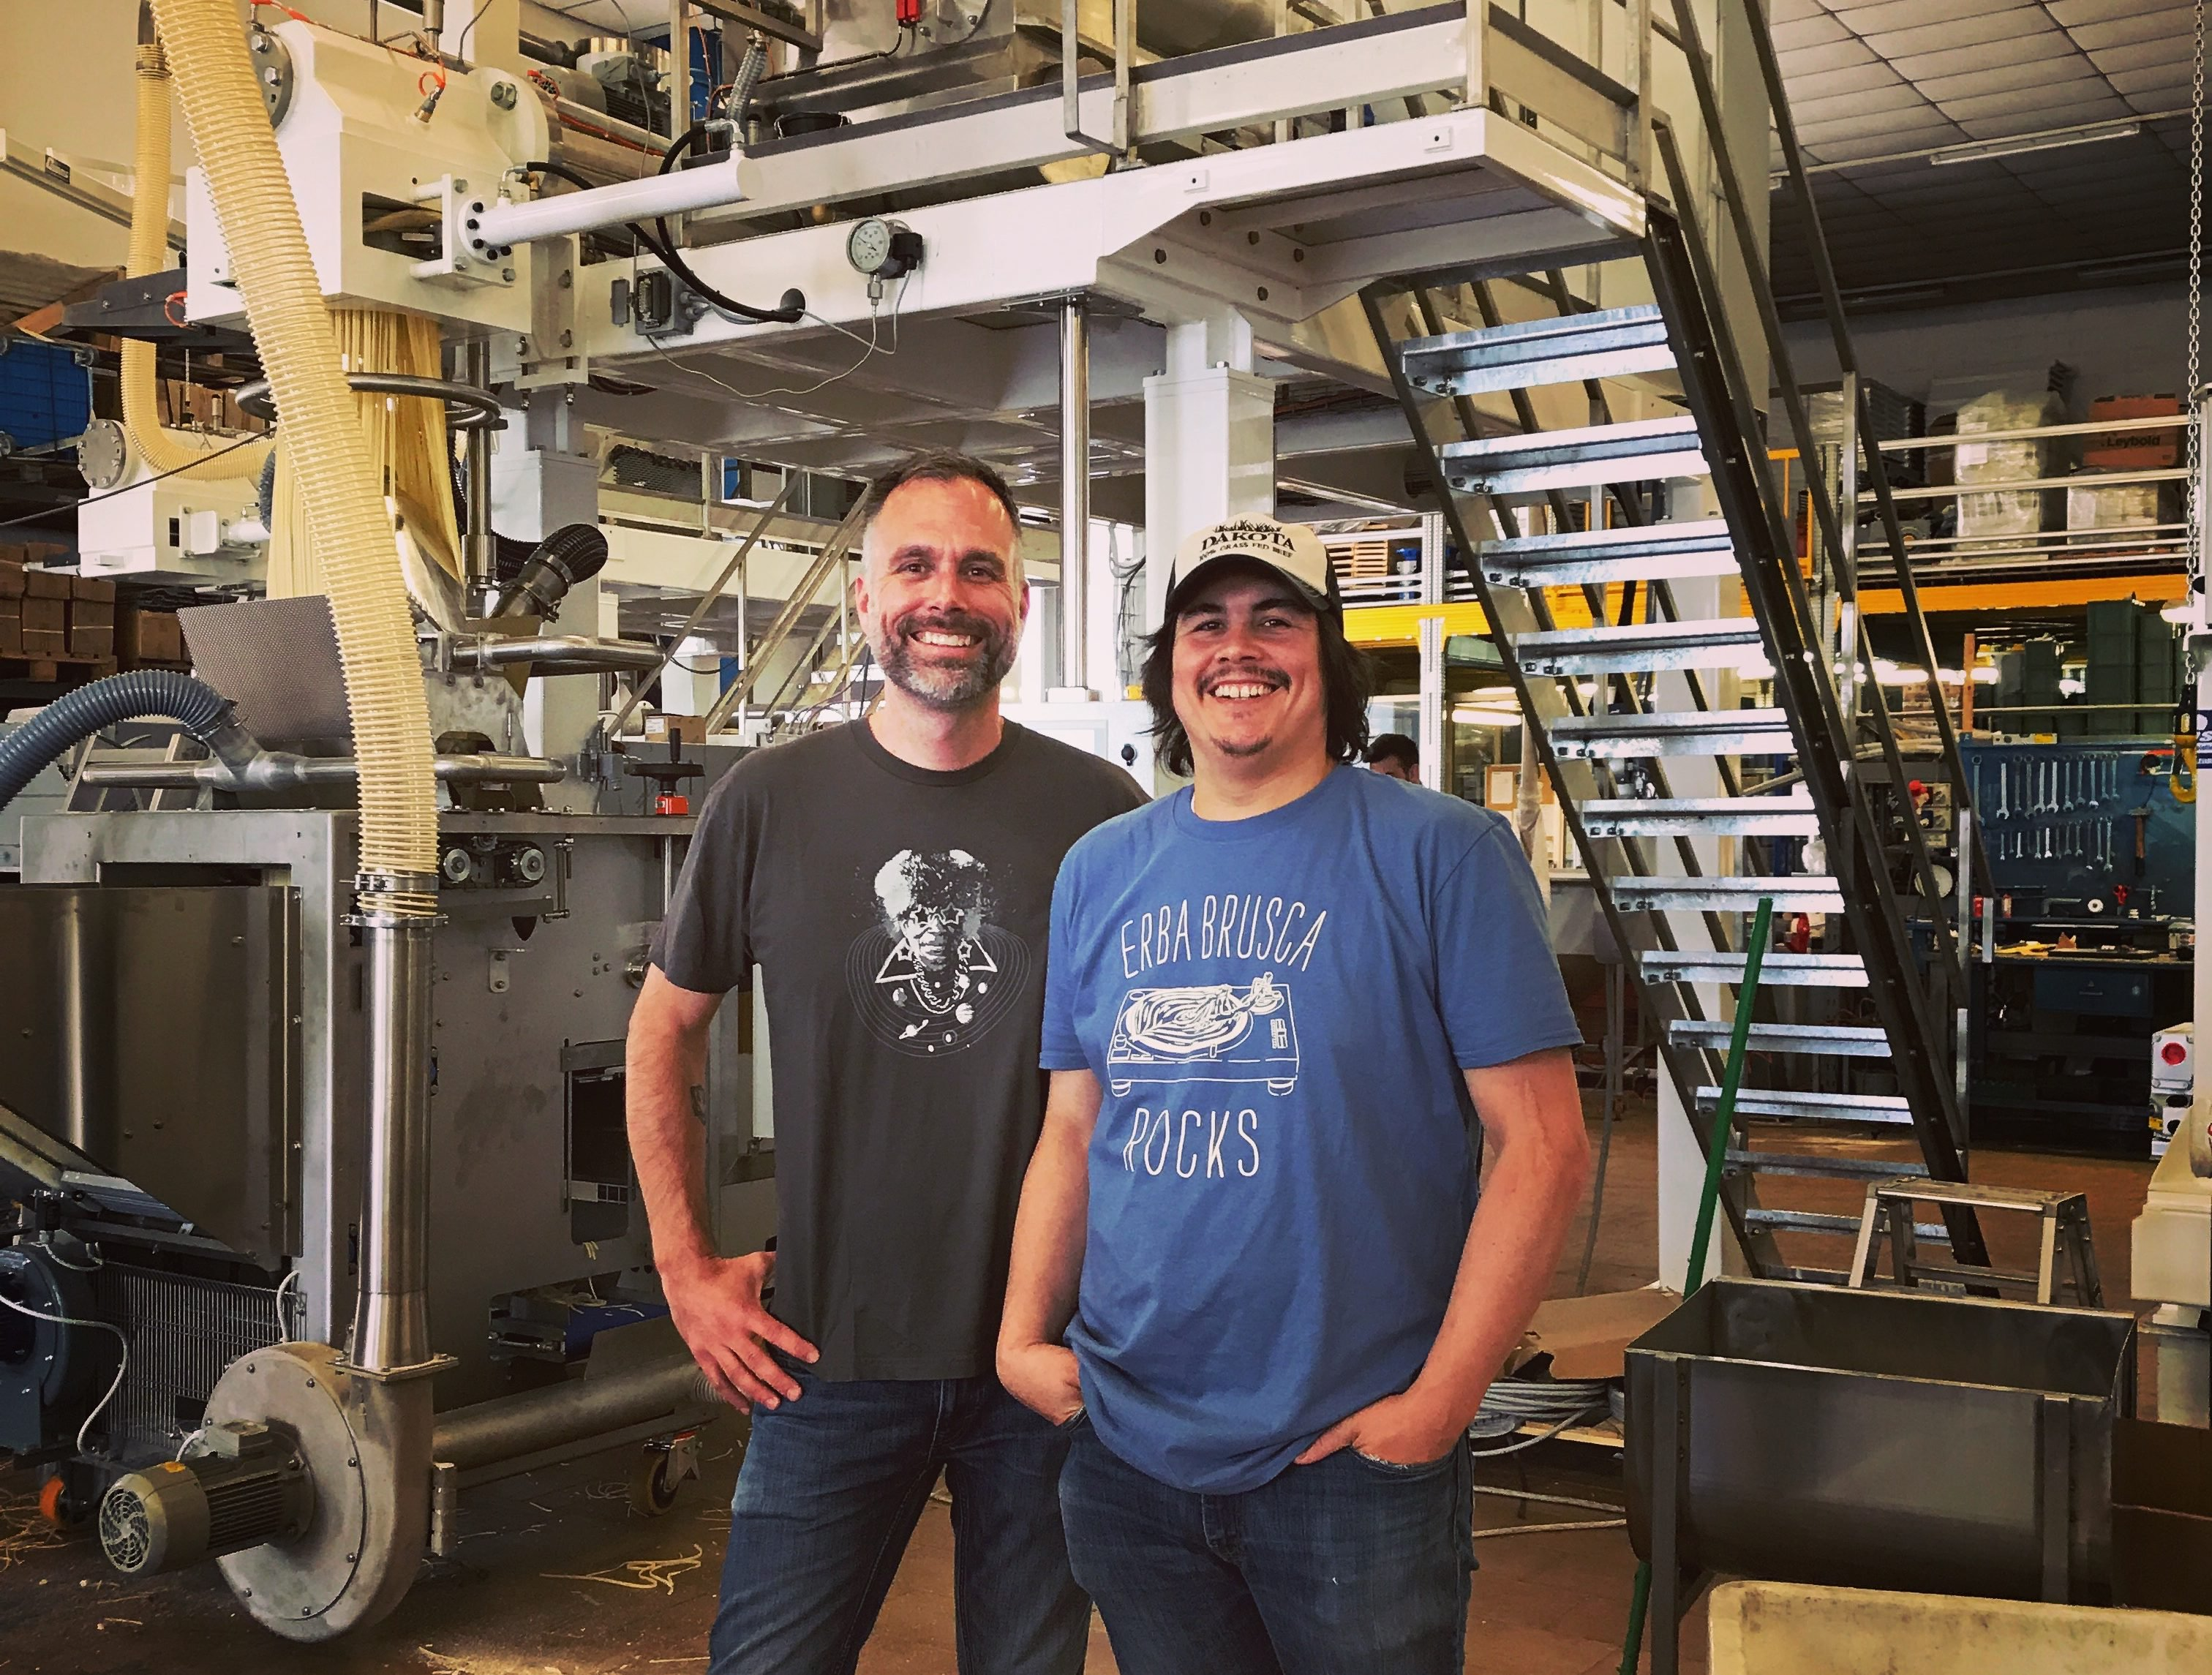 Sfoglini founders Steve Gonzalez and Scott Ketchum pose in their pasta factory. Sfoglini founders Steve Gonzalez and Scott Ketchum created their unique hemp pasta after visiting an organic hemp farm in New York state.